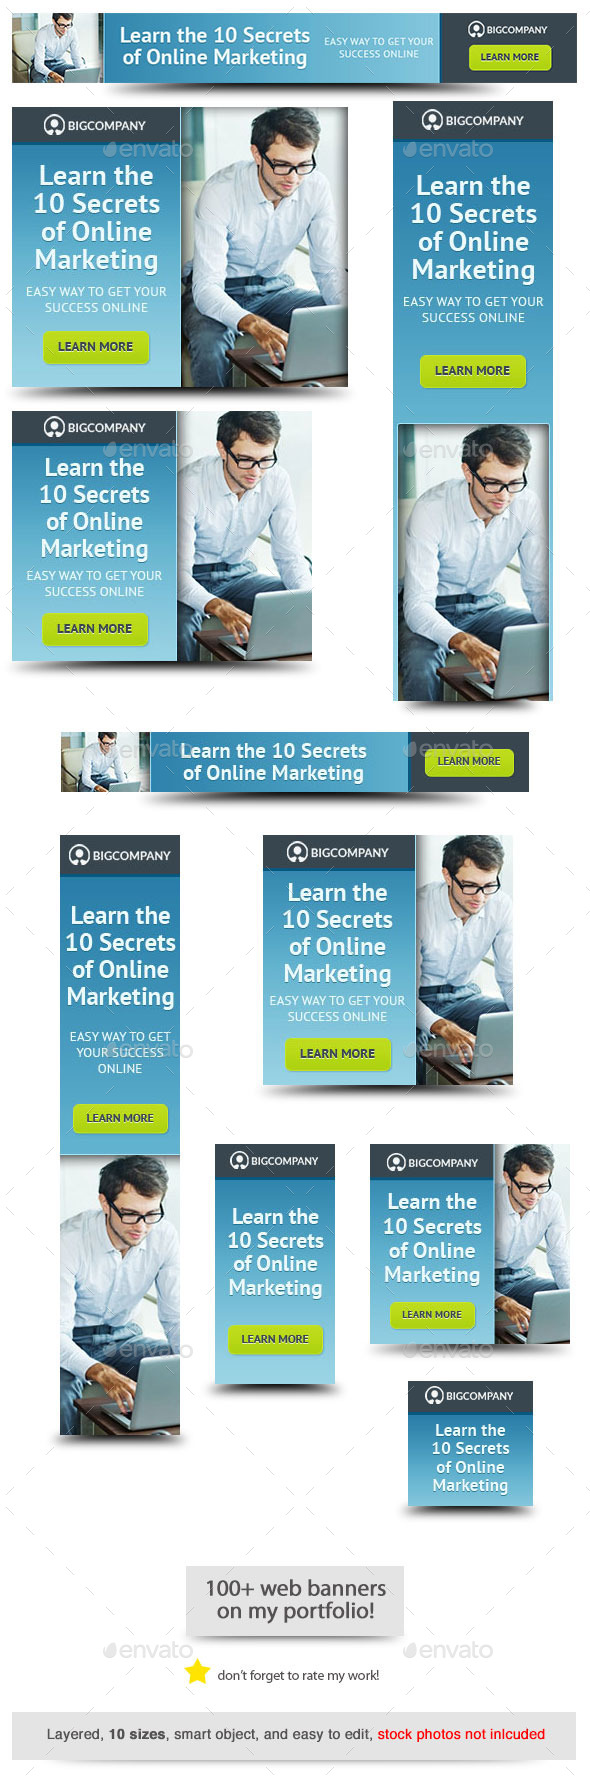 GraphicRiver Marketing Secrets Web Banner 10809002